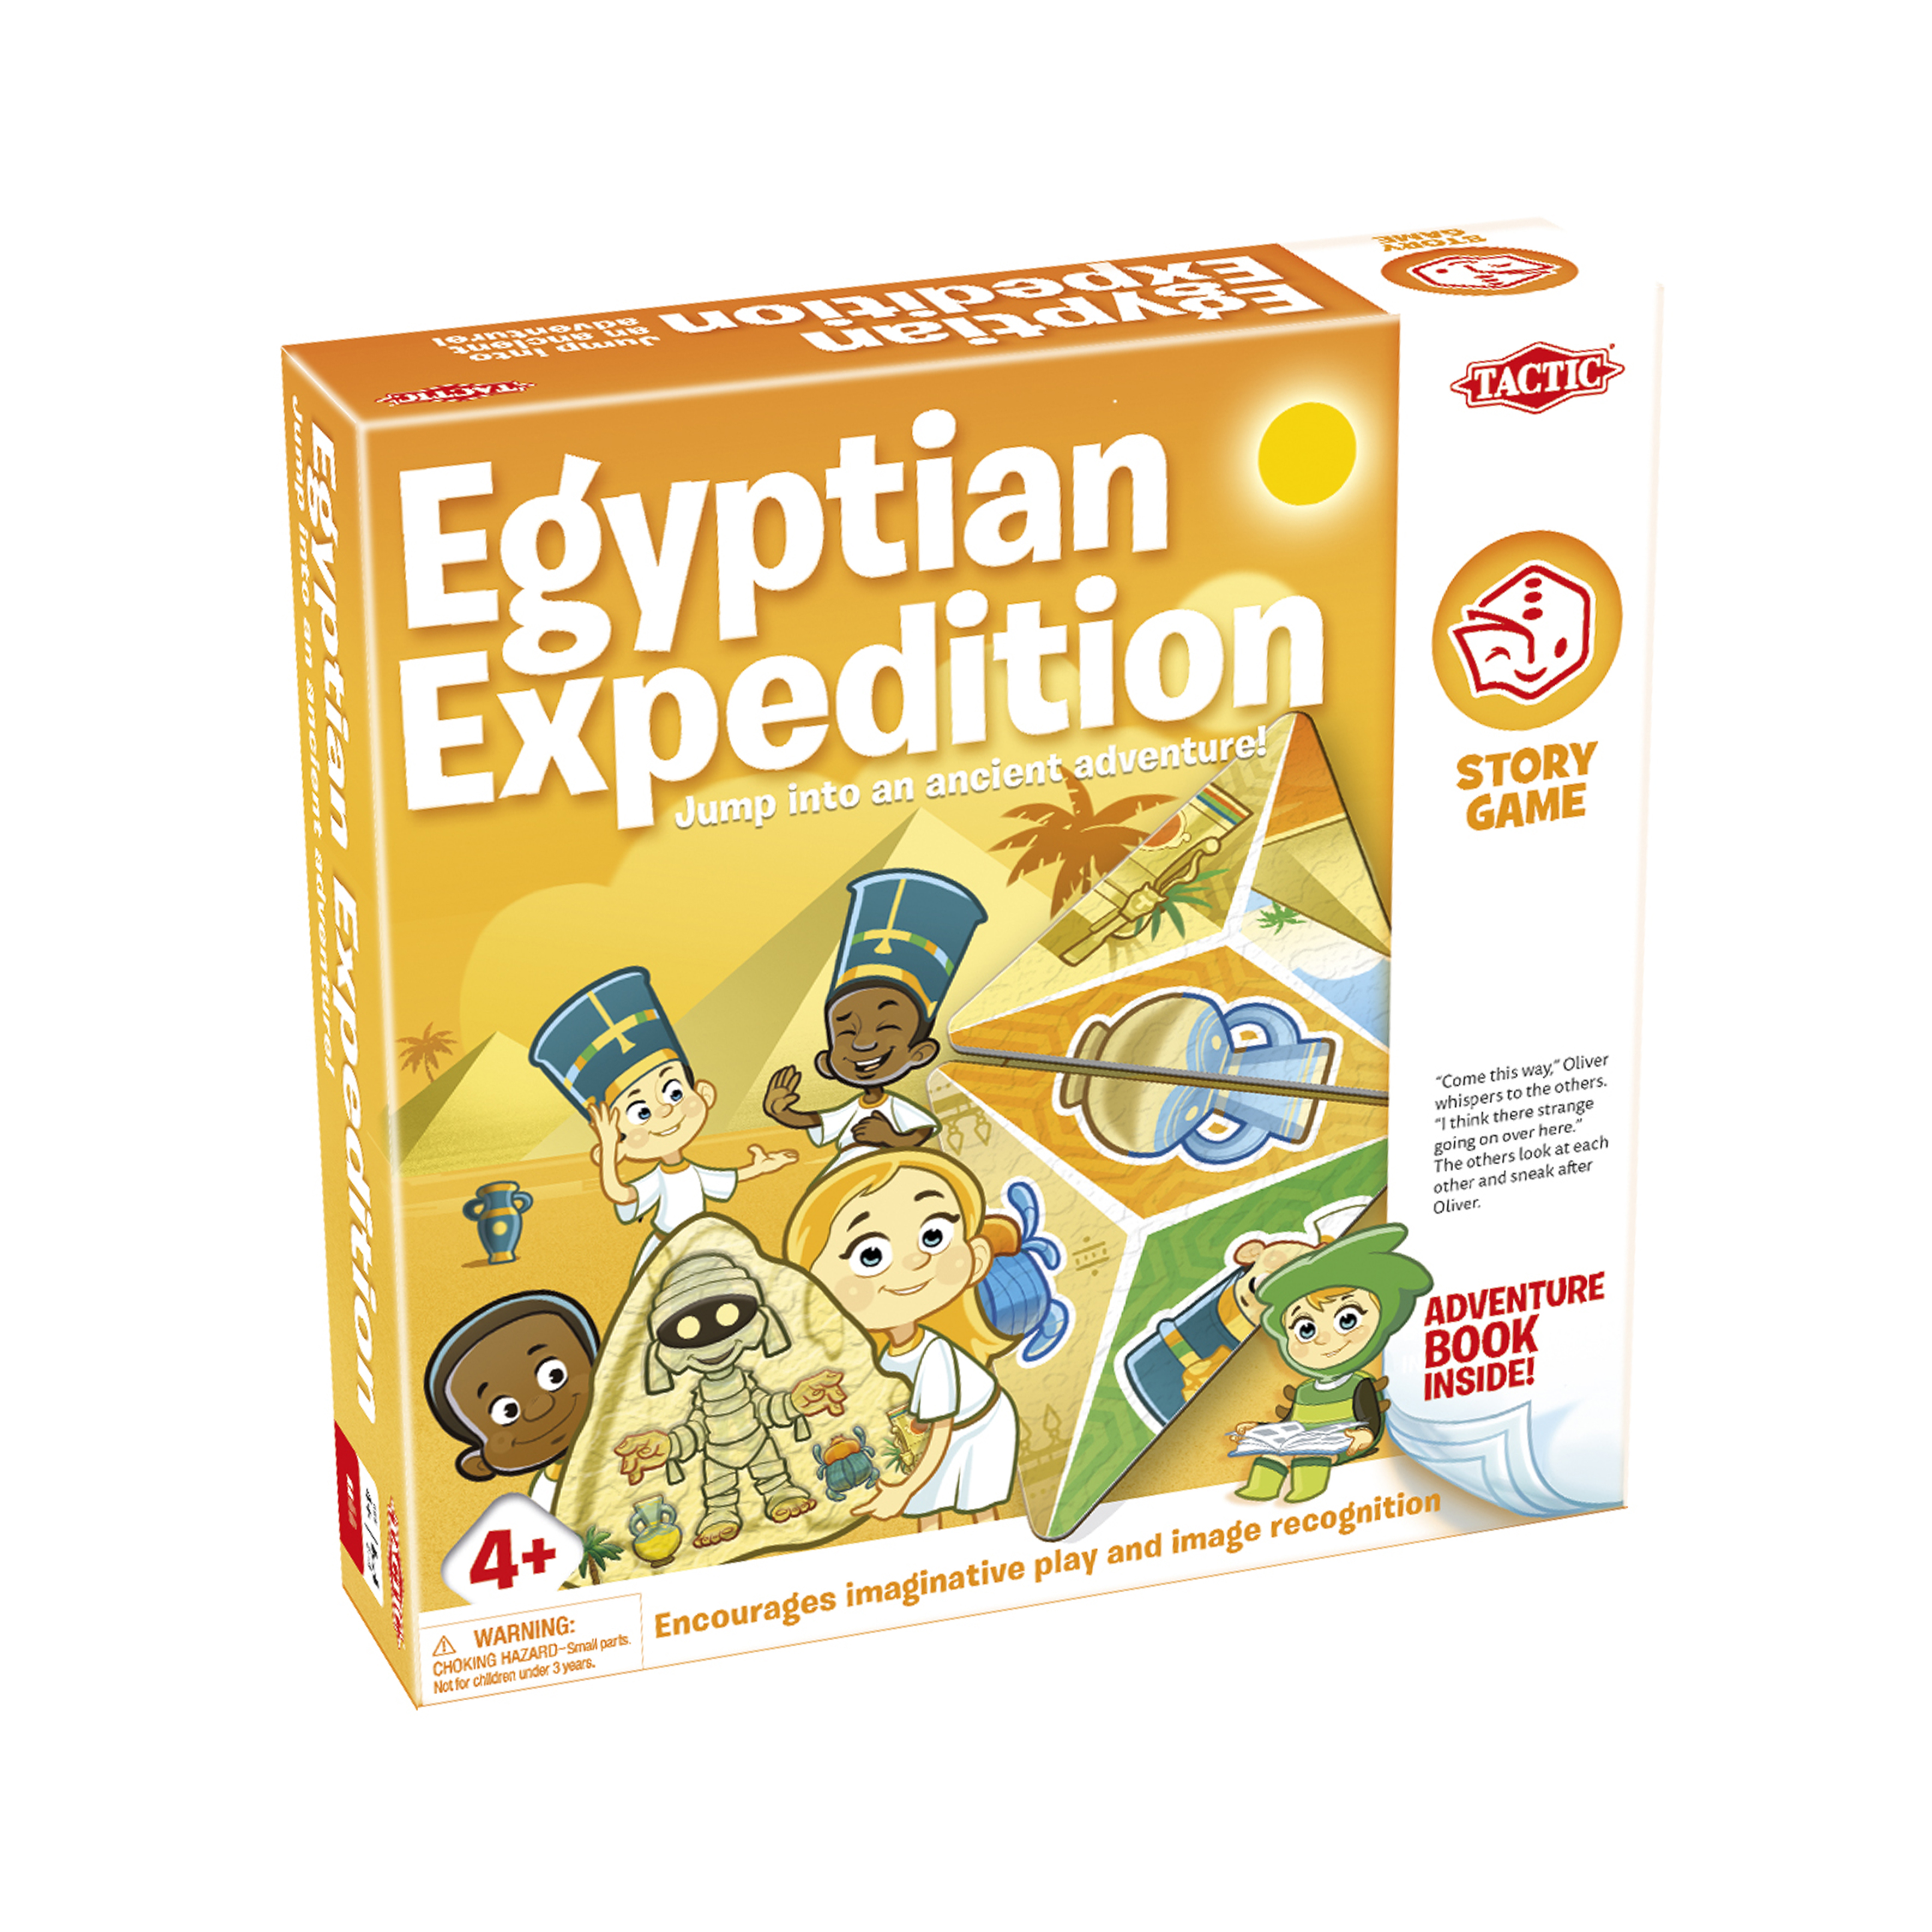 Eypgtian game expedition